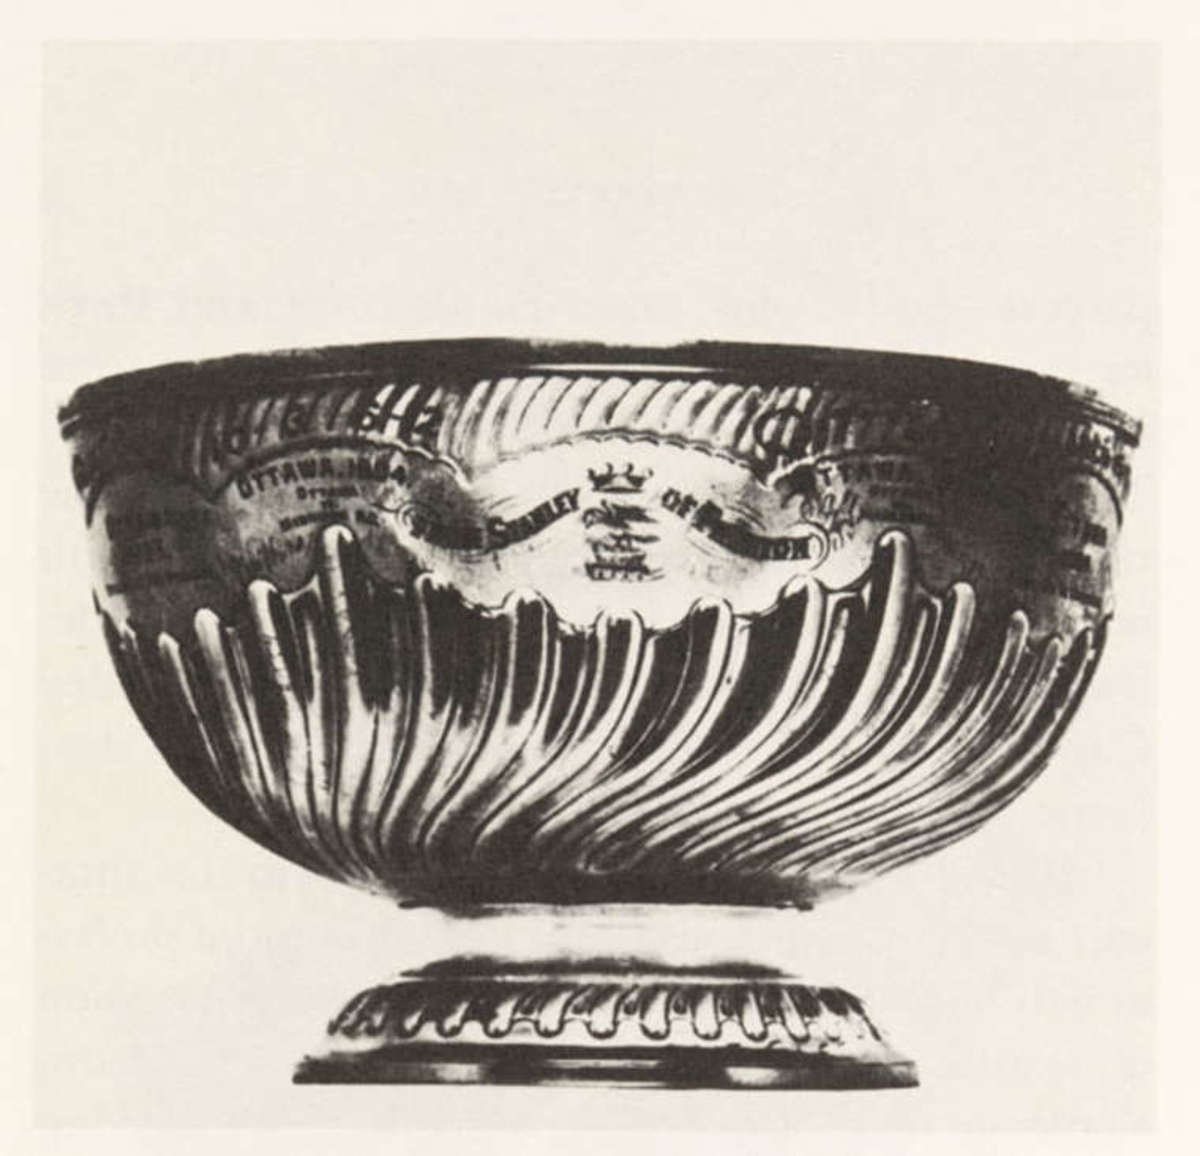 The Original Stanley Cup (1893)